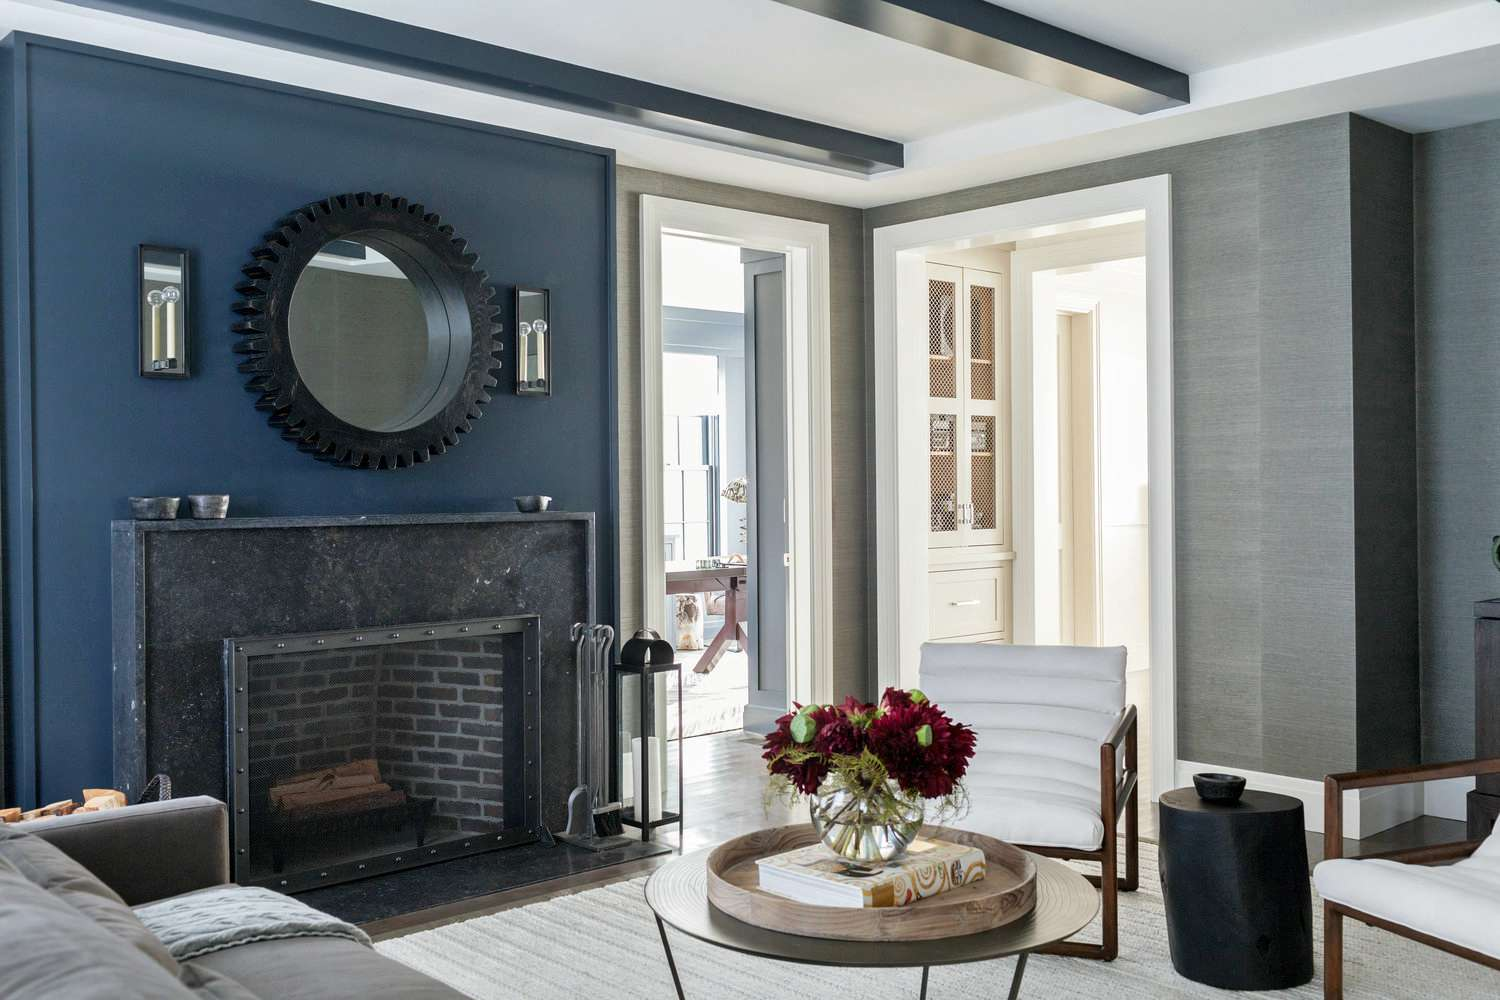 Black marble fireplace with metal rivets